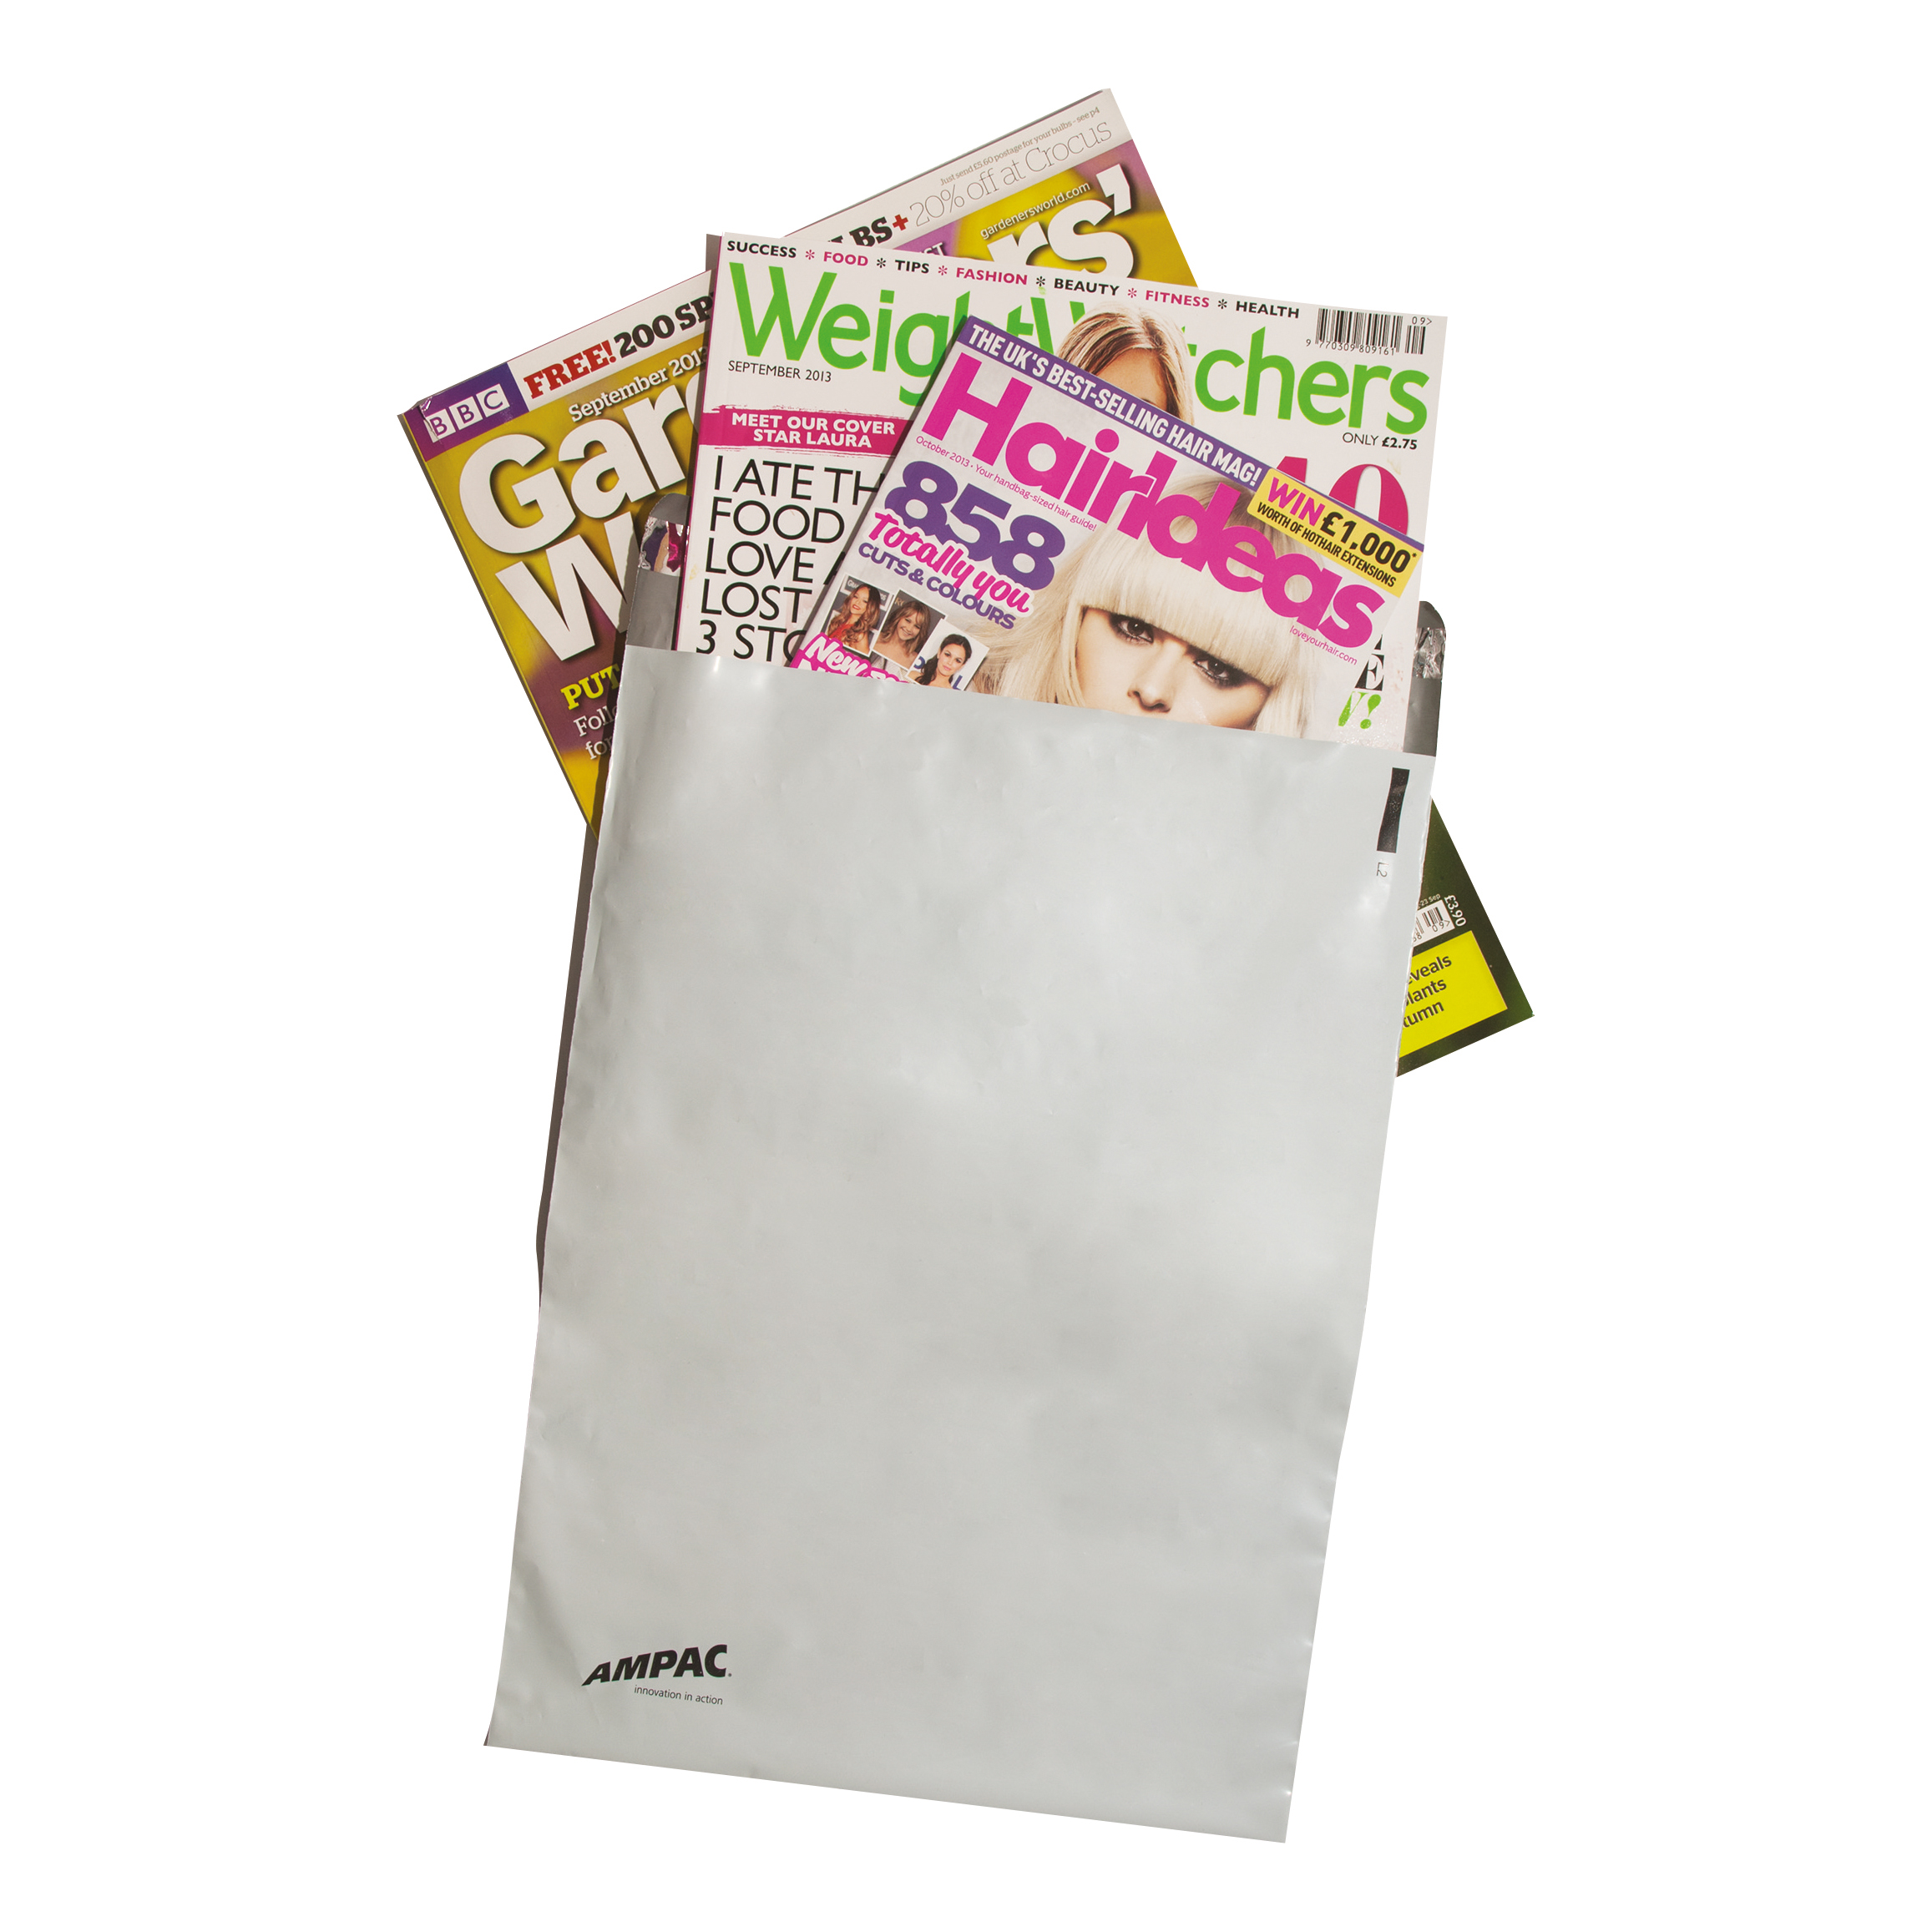 Keepsafe LightWeight Envelope Polythene Opaque C5 W162xH230mm Peel & Seal Ref KSV-L1 Pack 100